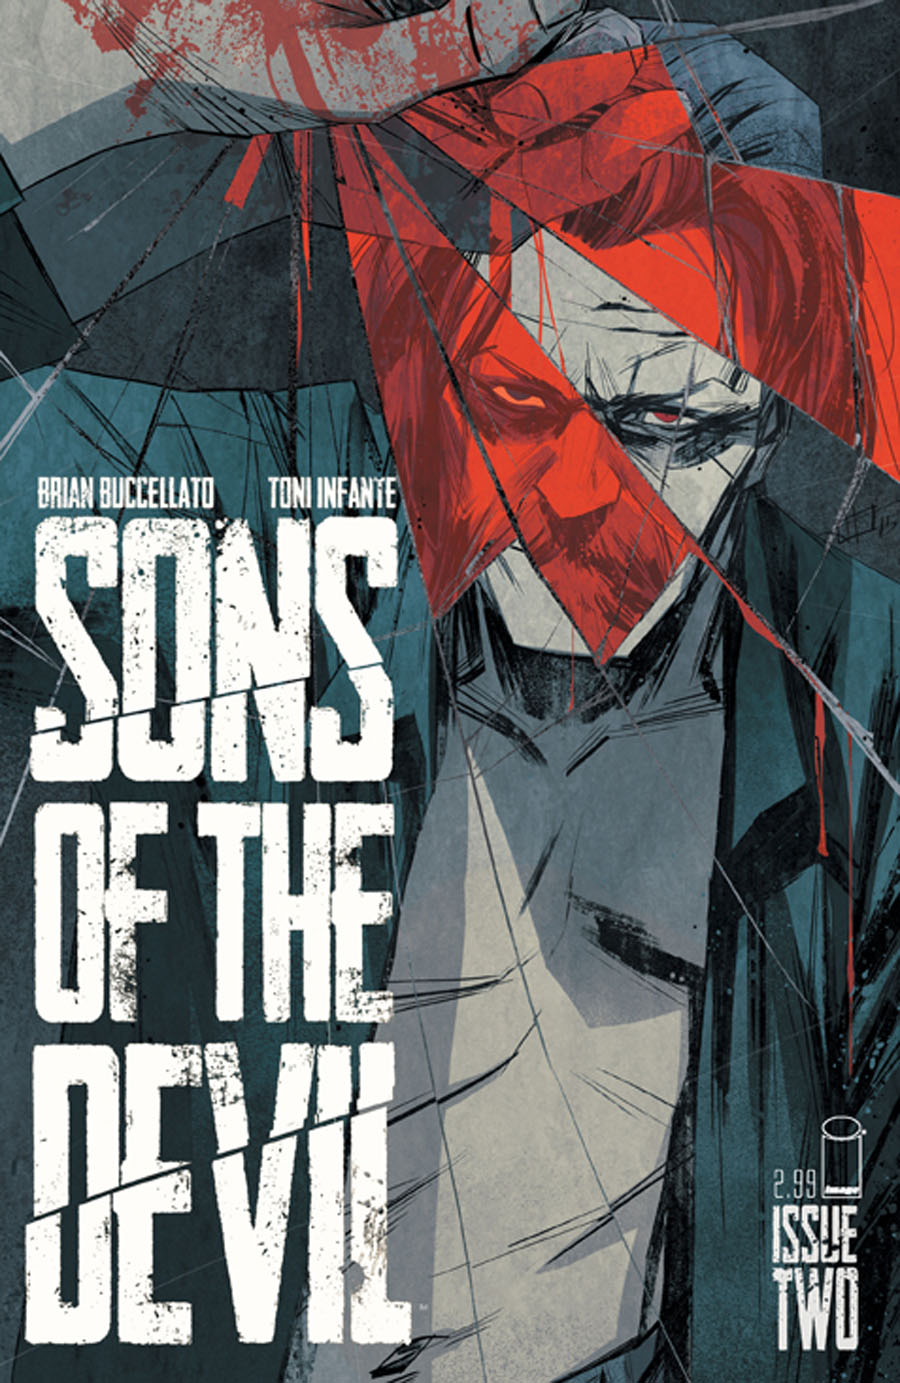 Sons Of The Devil #2 Cover A Toni Infante